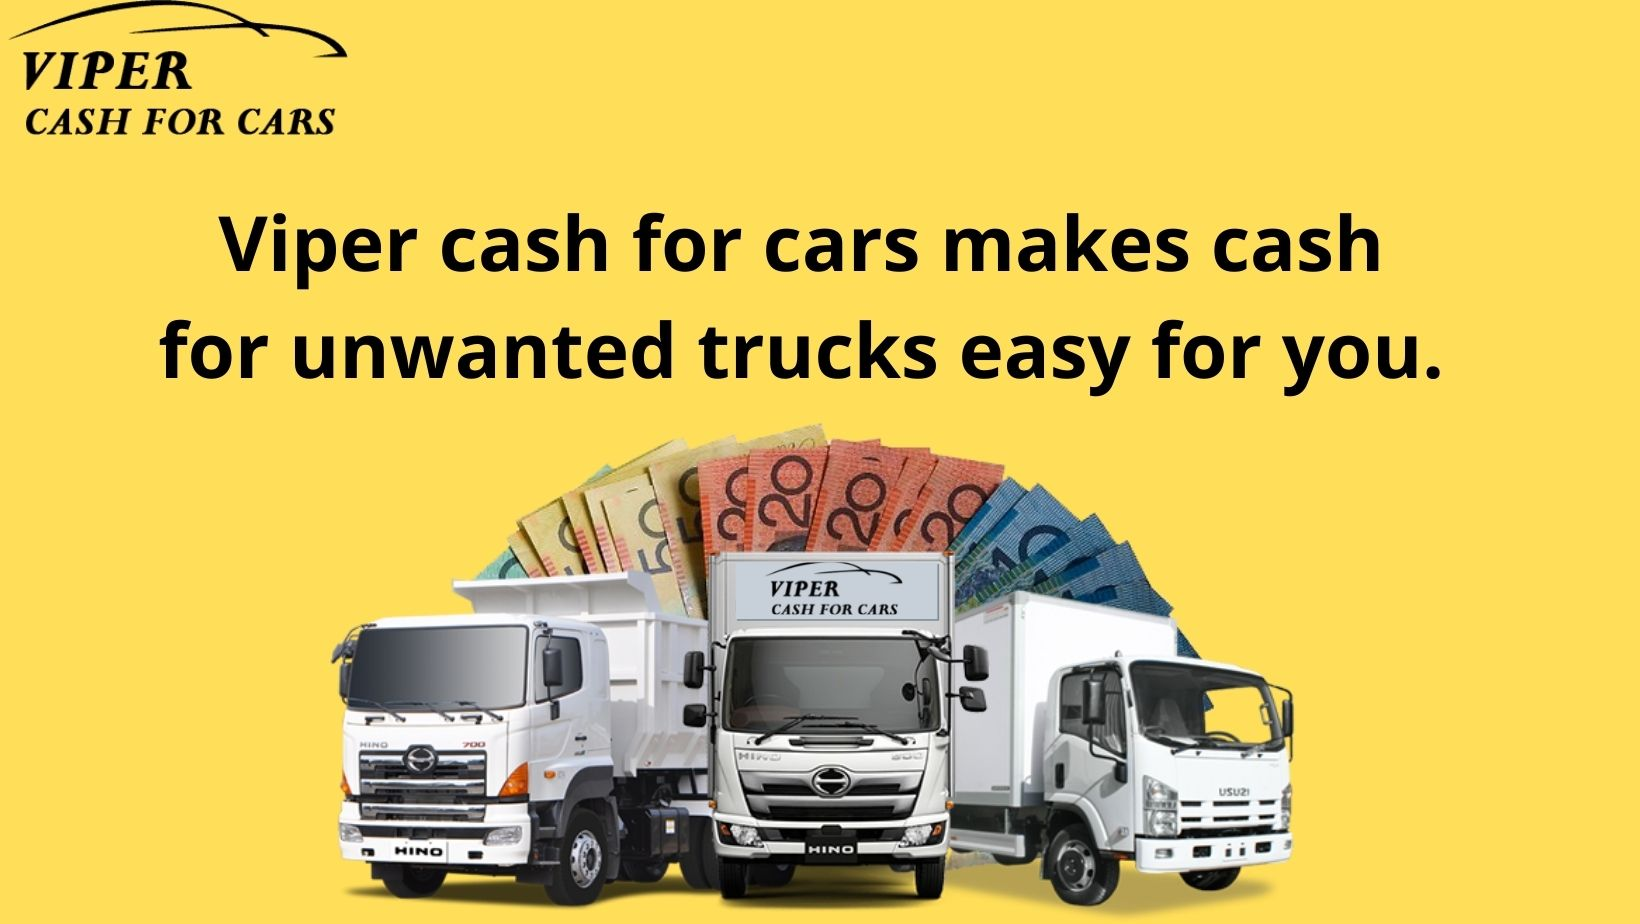 Viper cash for cars makes cash for unwanted trucks easy for you.